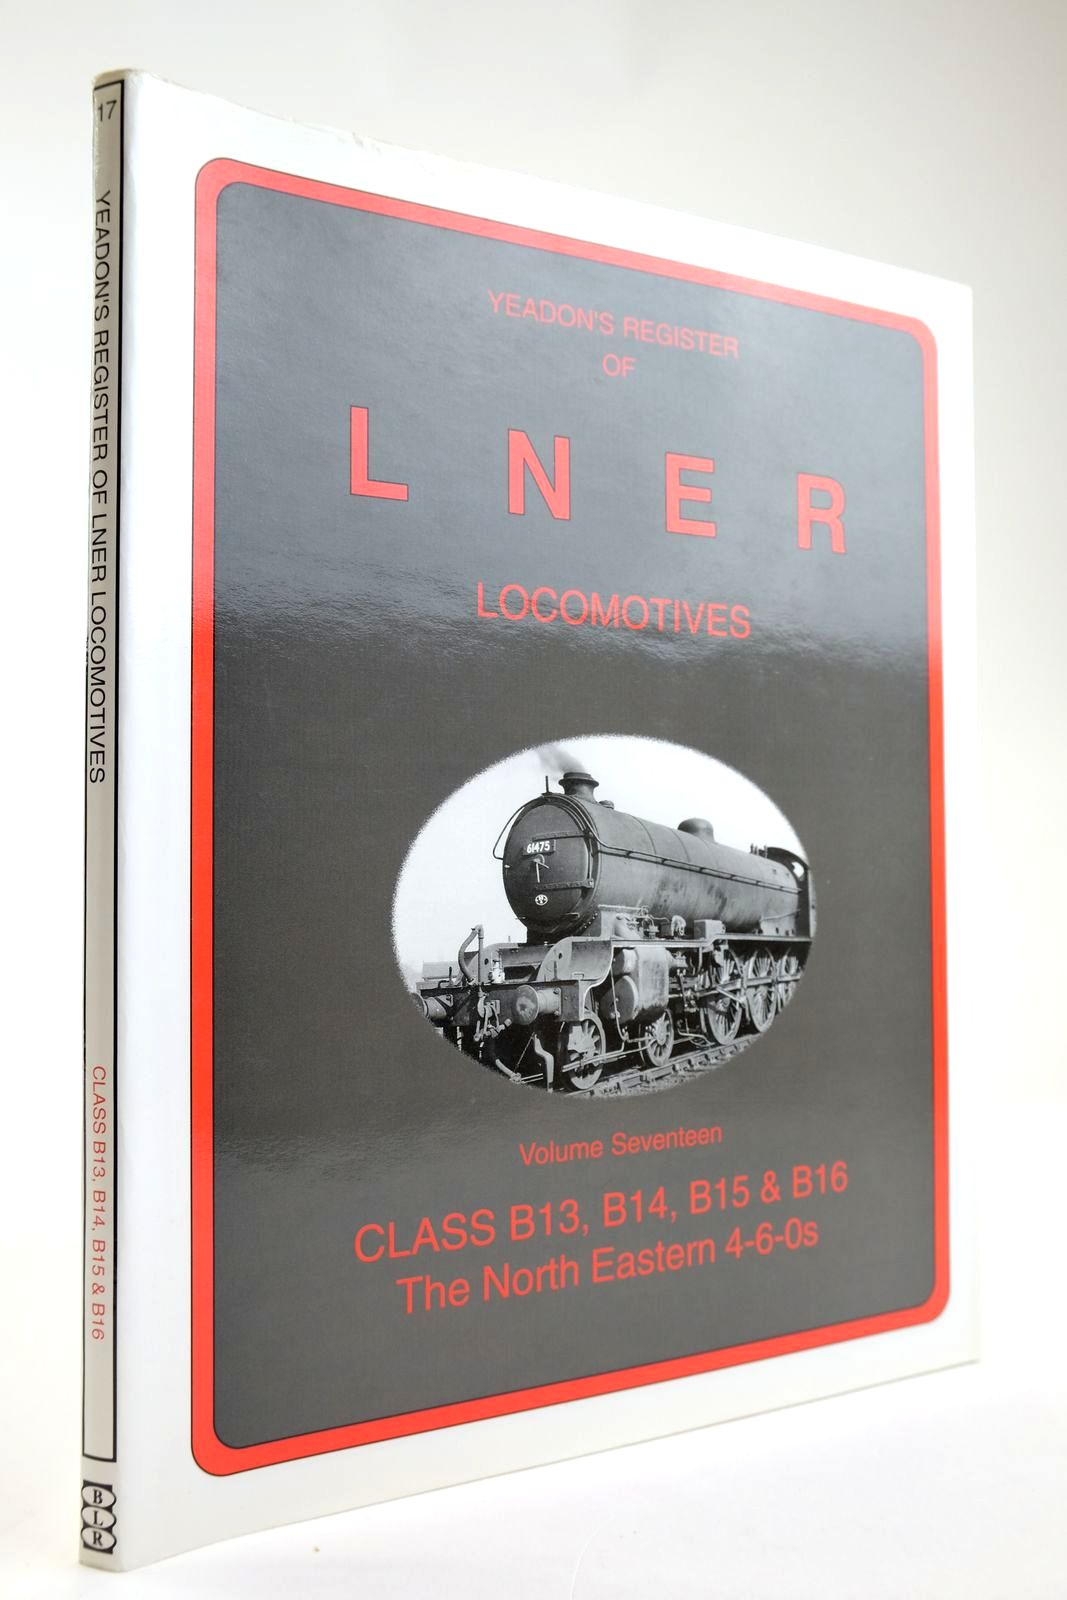 Photo of YEADON'S REGISTER OF LNER LOCOMOTIVES VOLUME SEVENTEEN written by Yeadon, W.B. published by Book Law Publications, Challenger Publications (STOCK CODE: 2133575)  for sale by Stella & Rose's Books